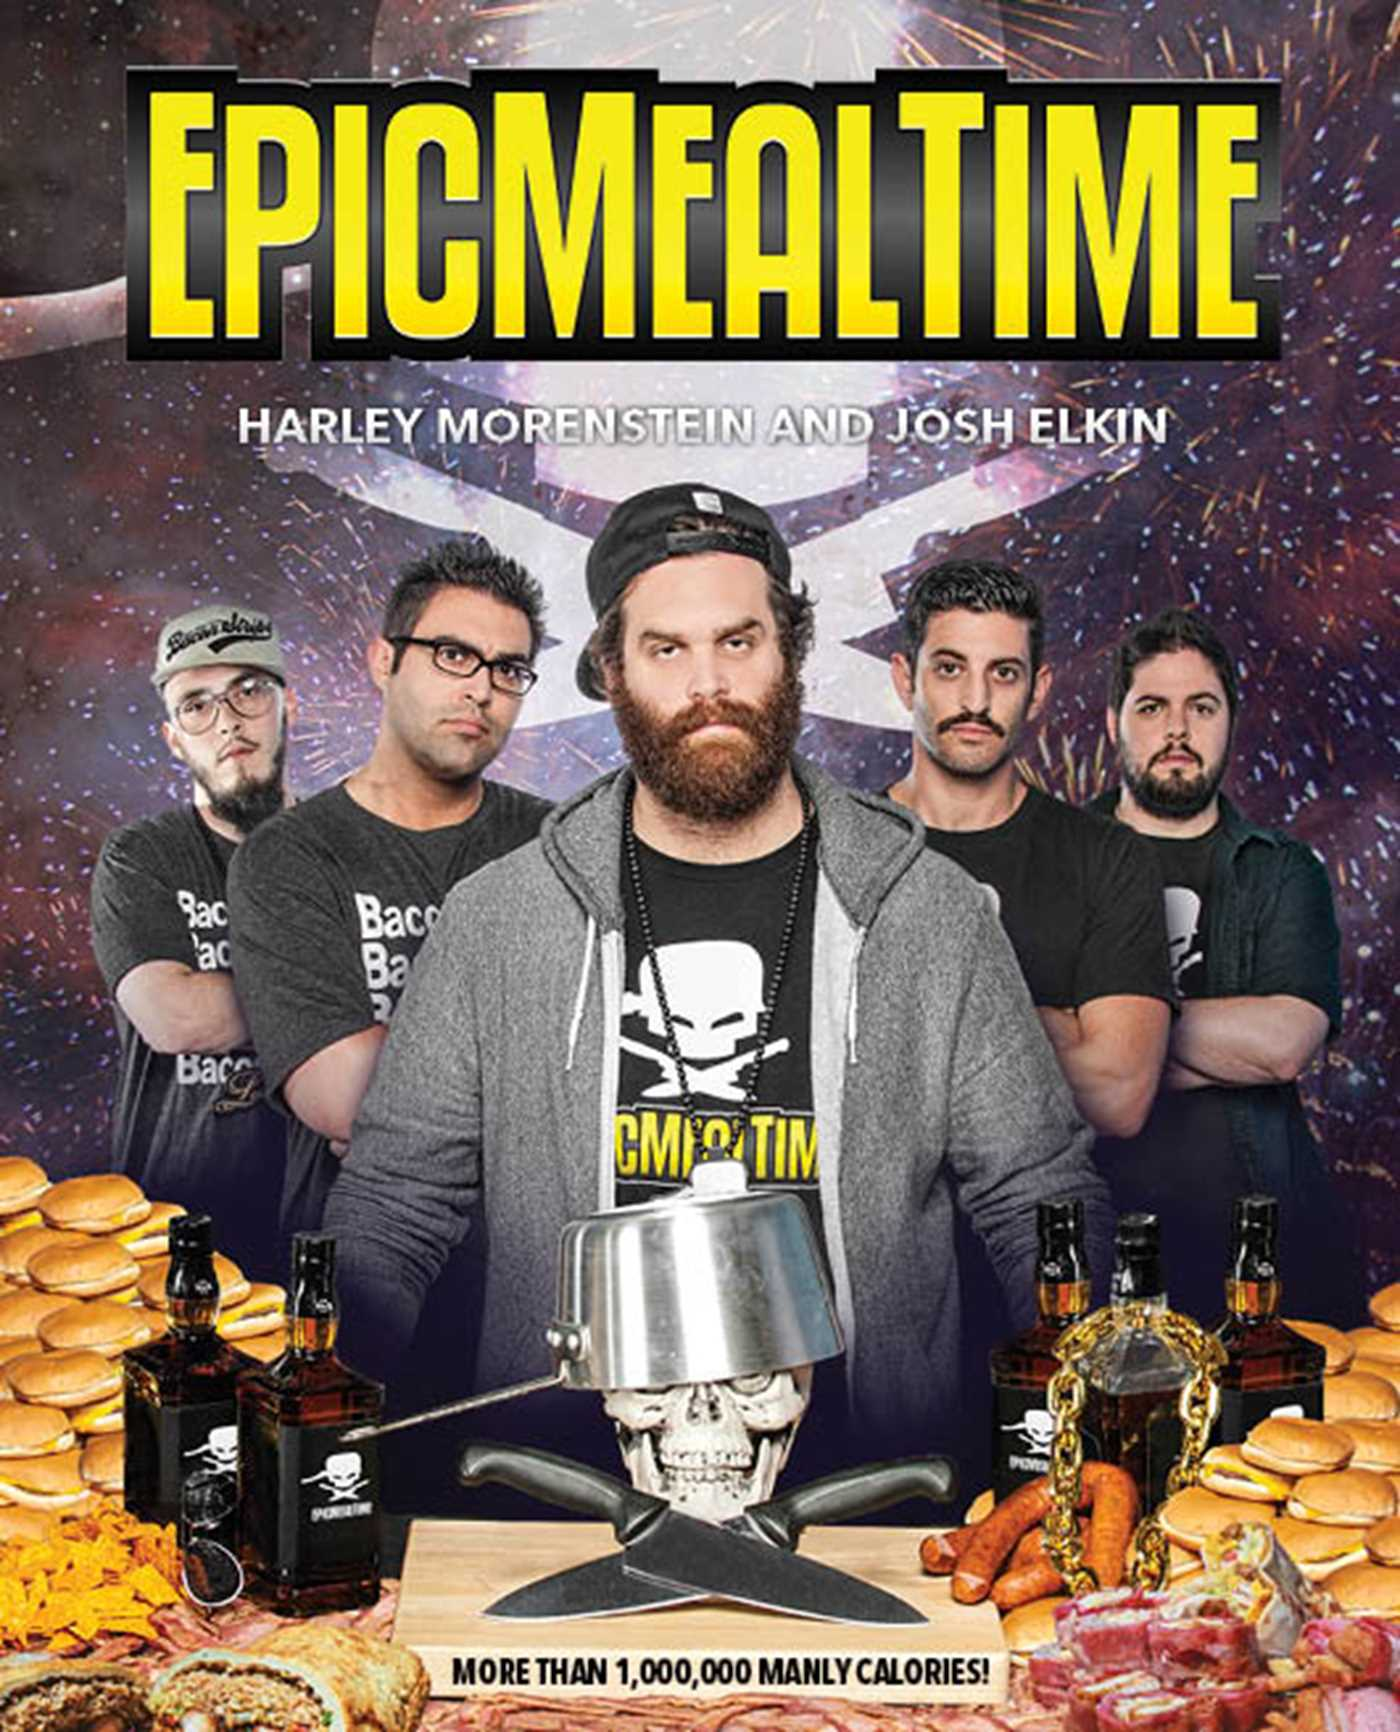 Epic meal time 9781476746029 hr